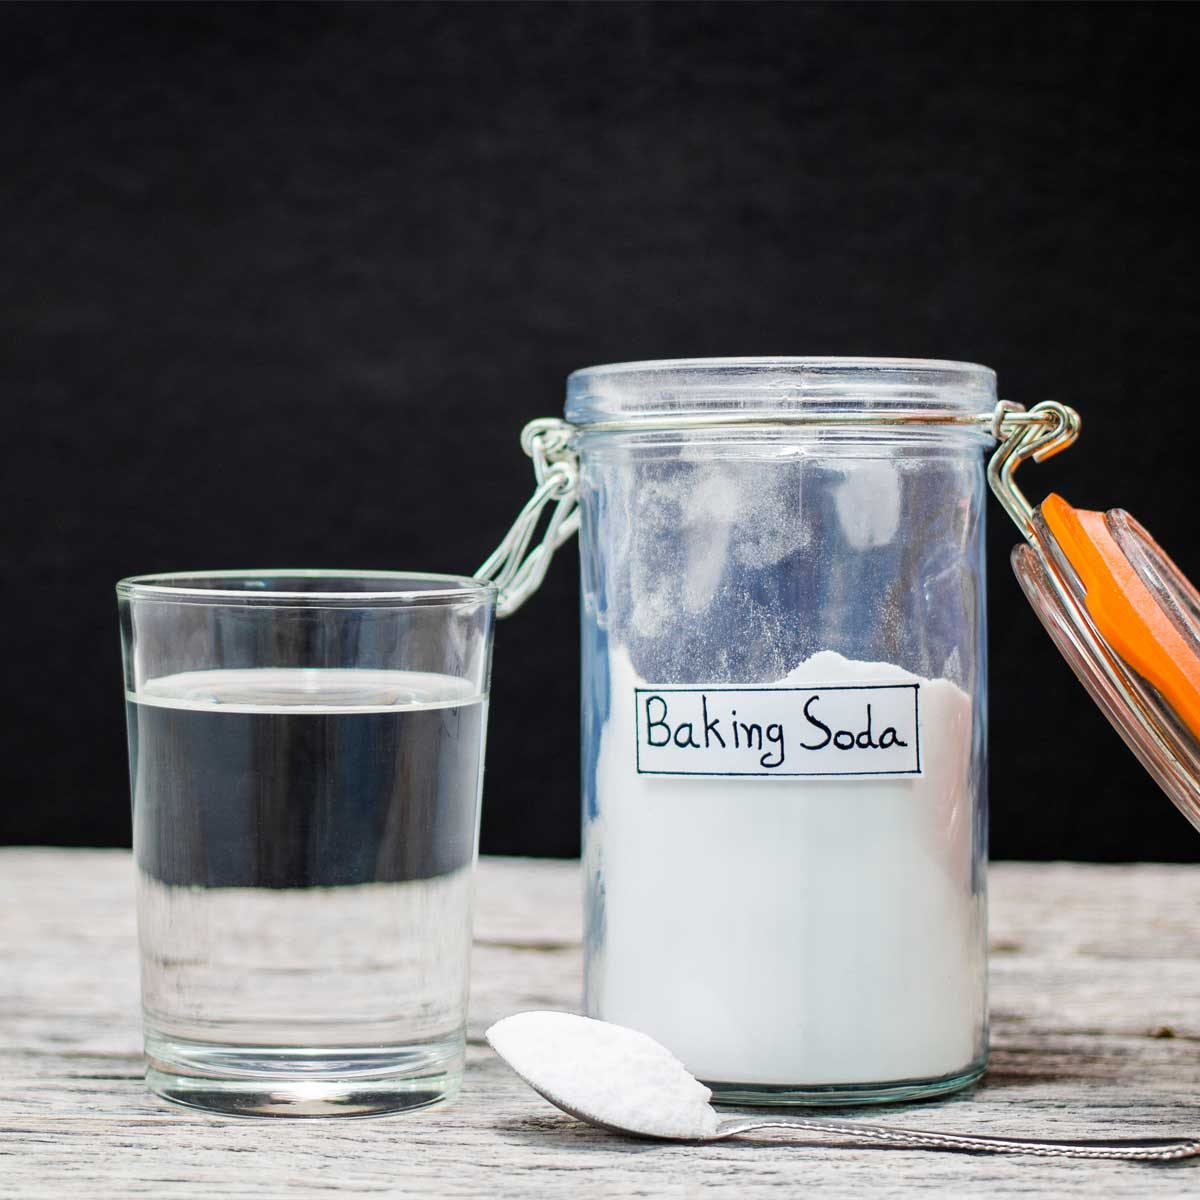 remove scratches in glass with baking soda and water